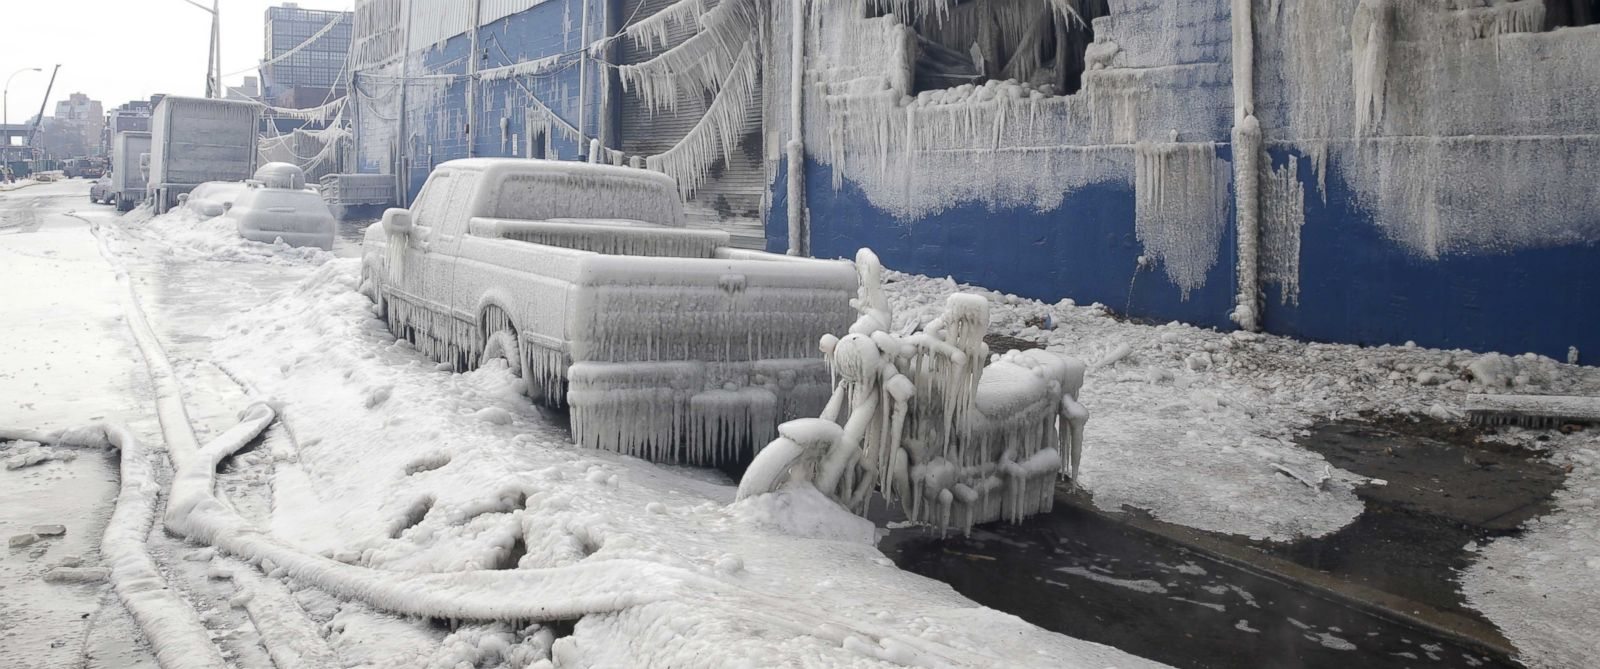 See Cars Encased in Ice as Firefighters Put Out Brooklyn Blaze - ABC